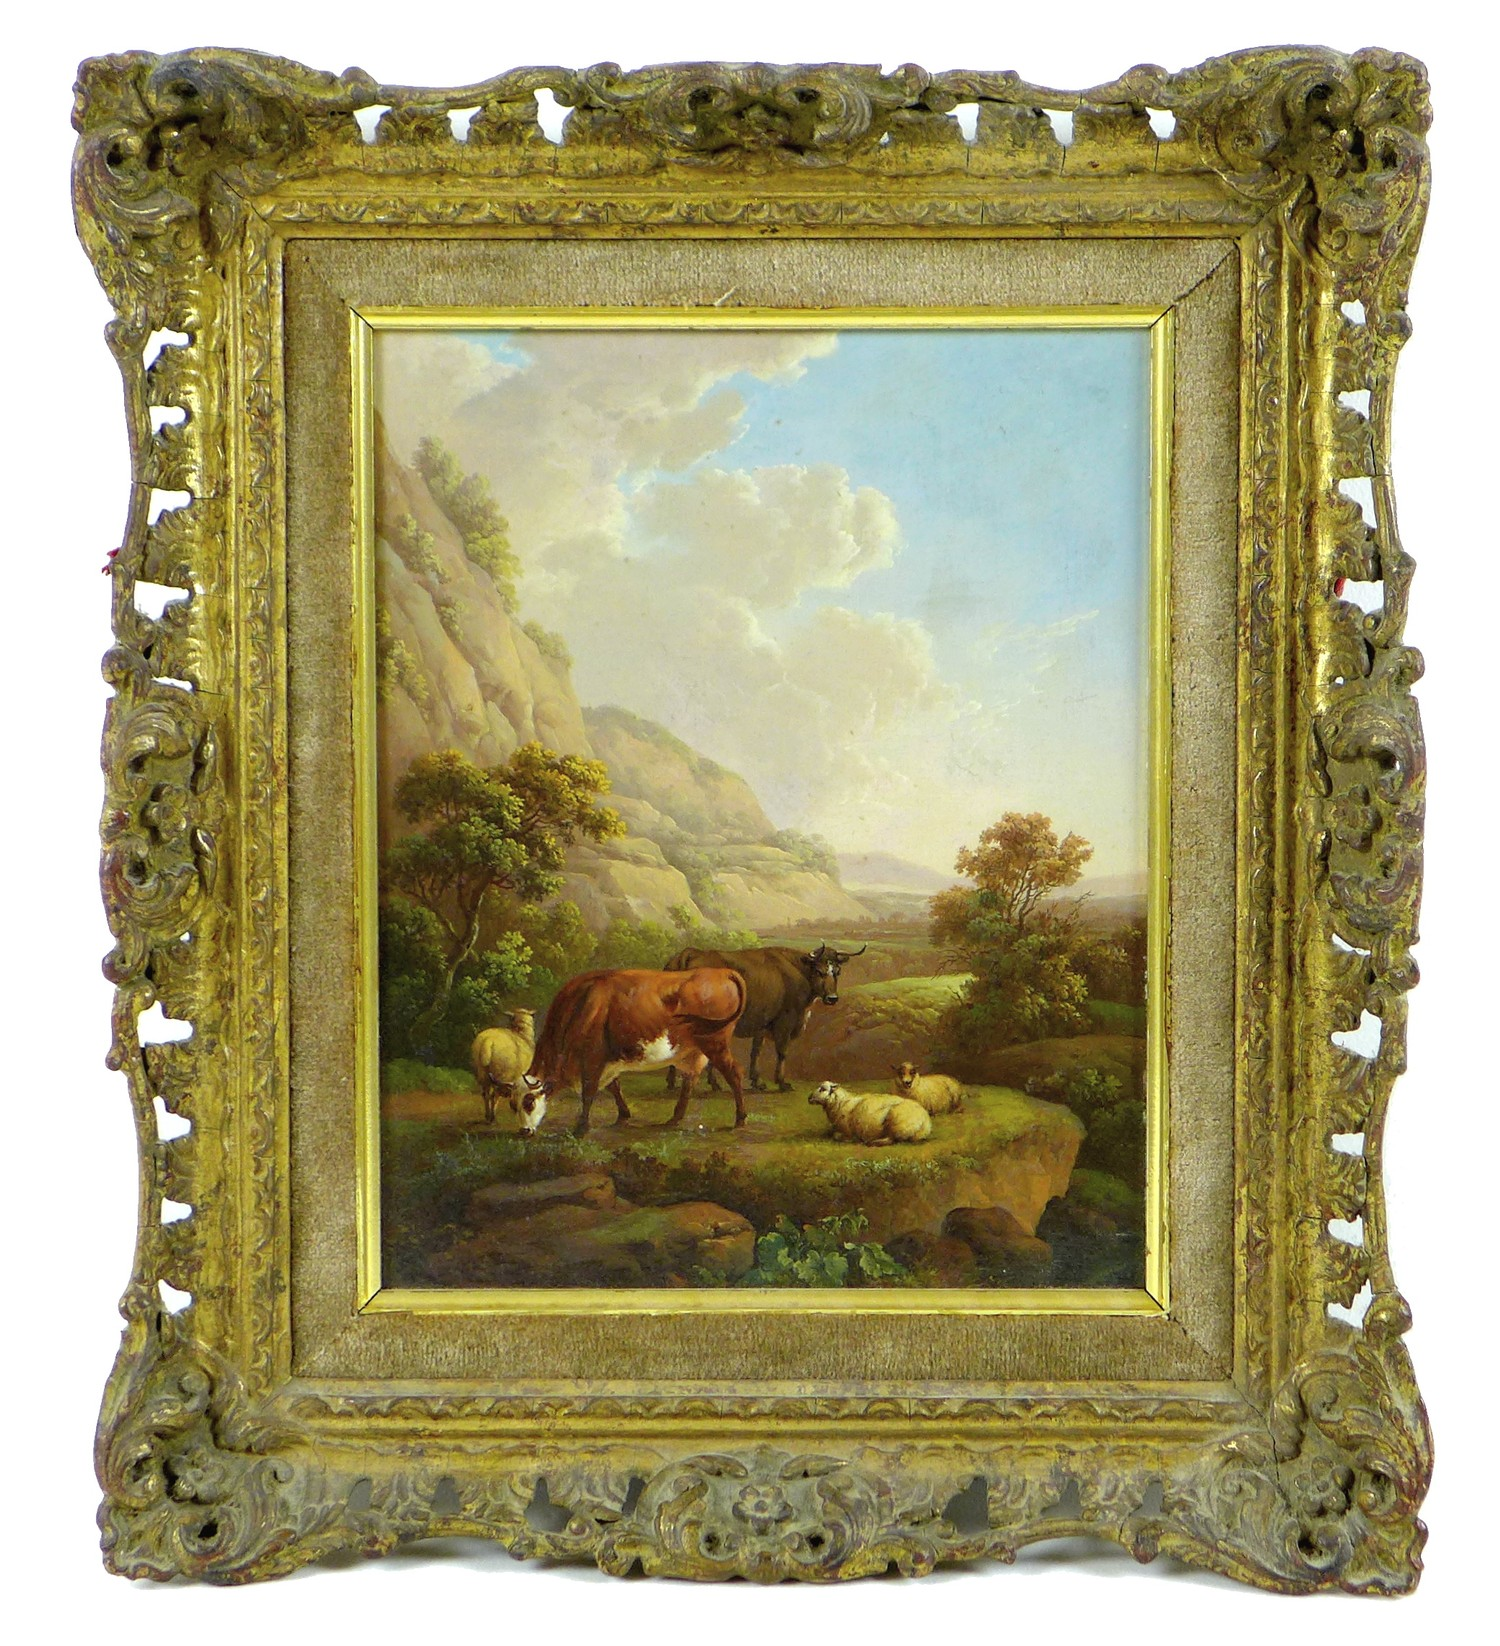 Attributed to Charles Towne (British, 1763-1840): 'Landscape & Cattle', signed 'Town' to a rock in - Image 2 of 11